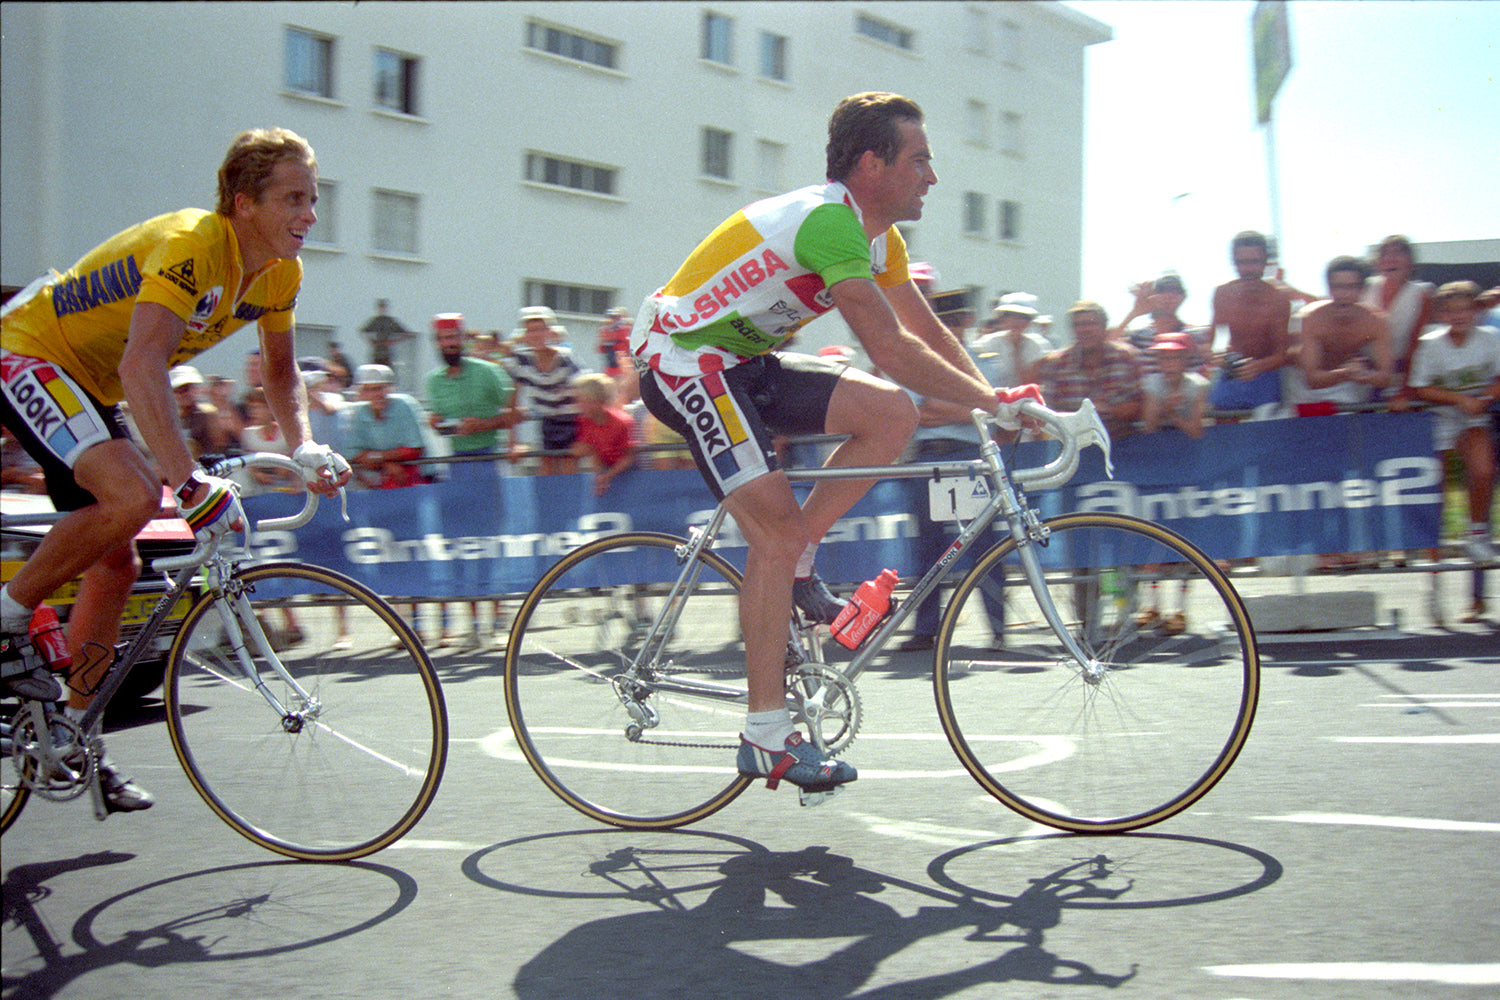 Bernard Hinault (Right, Combination jersey) leads race leader and La Vie Claire team mate Greg Lemond on that famous stage from Briançon to the summit of l'Alpe d'Huez. Photo: Fotoreporter Sirotti.